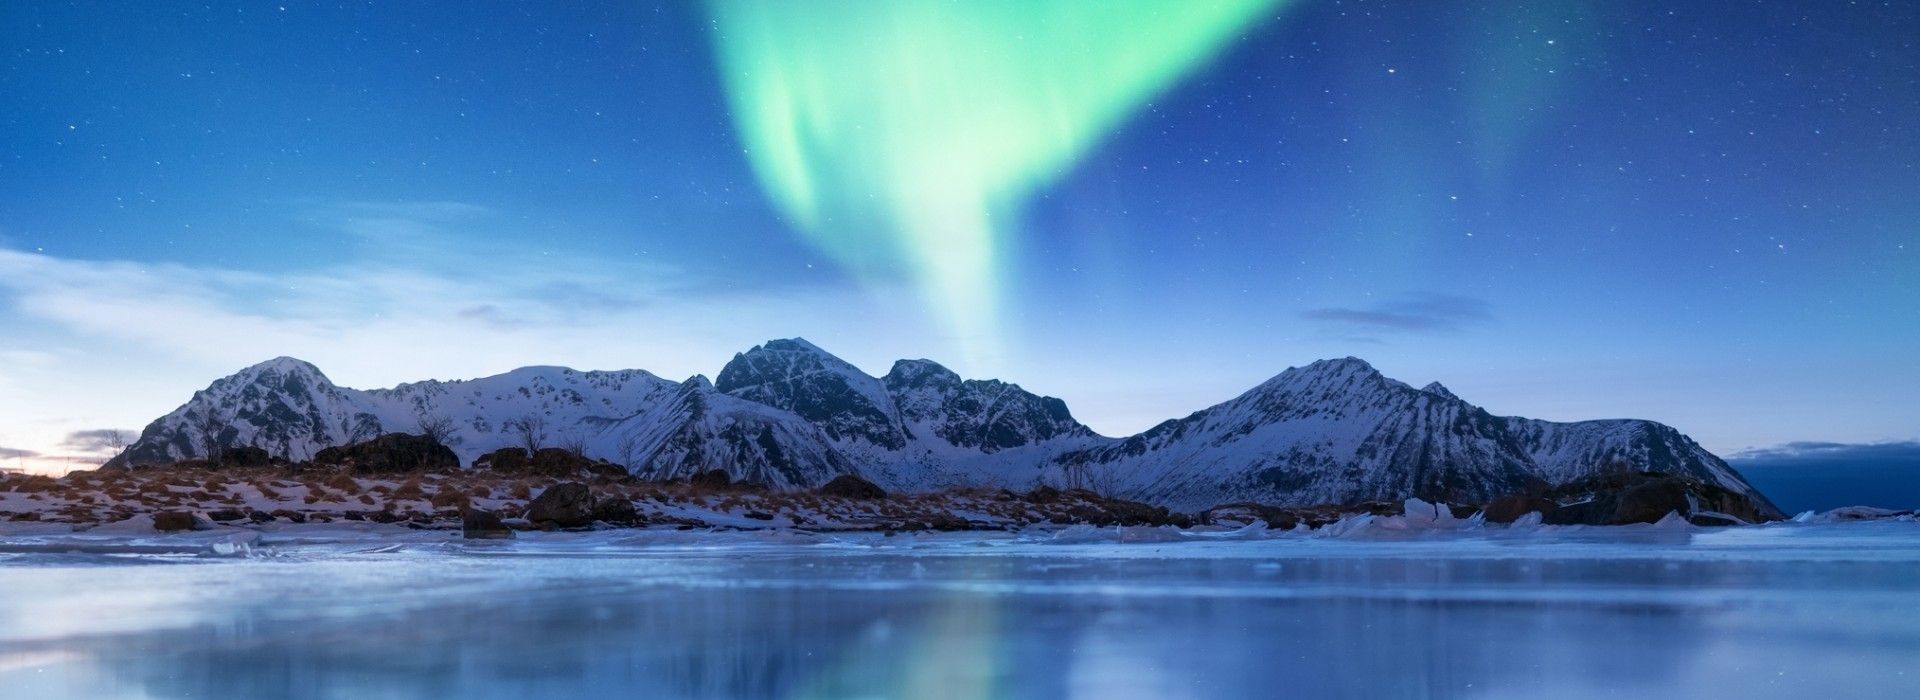 Winter adventures Tours in Scandinavia